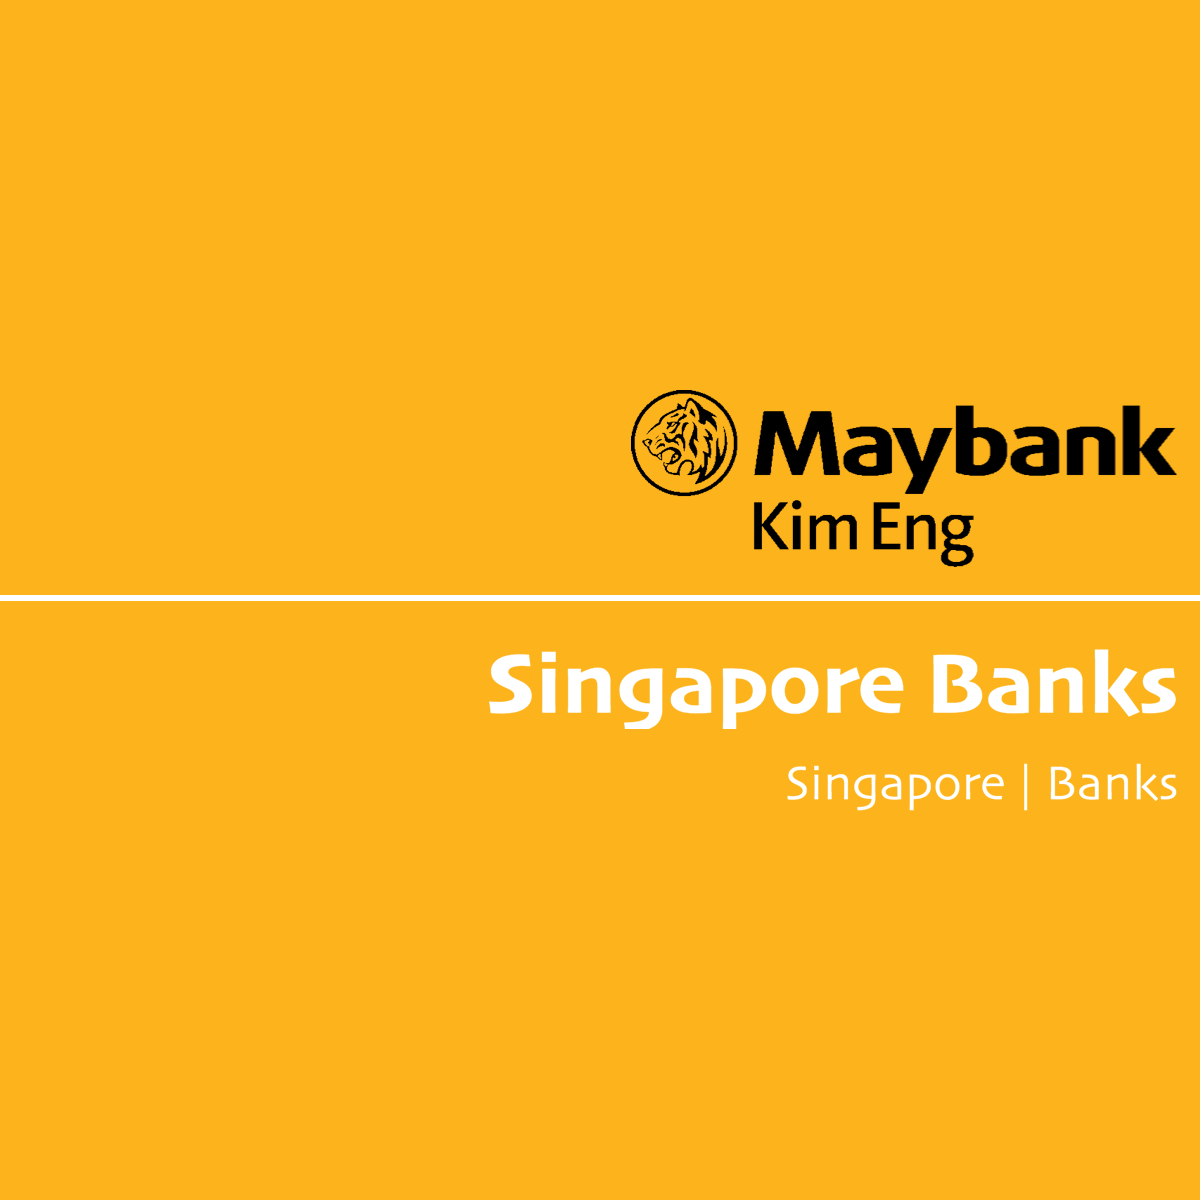 Singapore Banks - Maybank Kim Eng 2017-07-03: Positive Momentum, Albeit Moderated